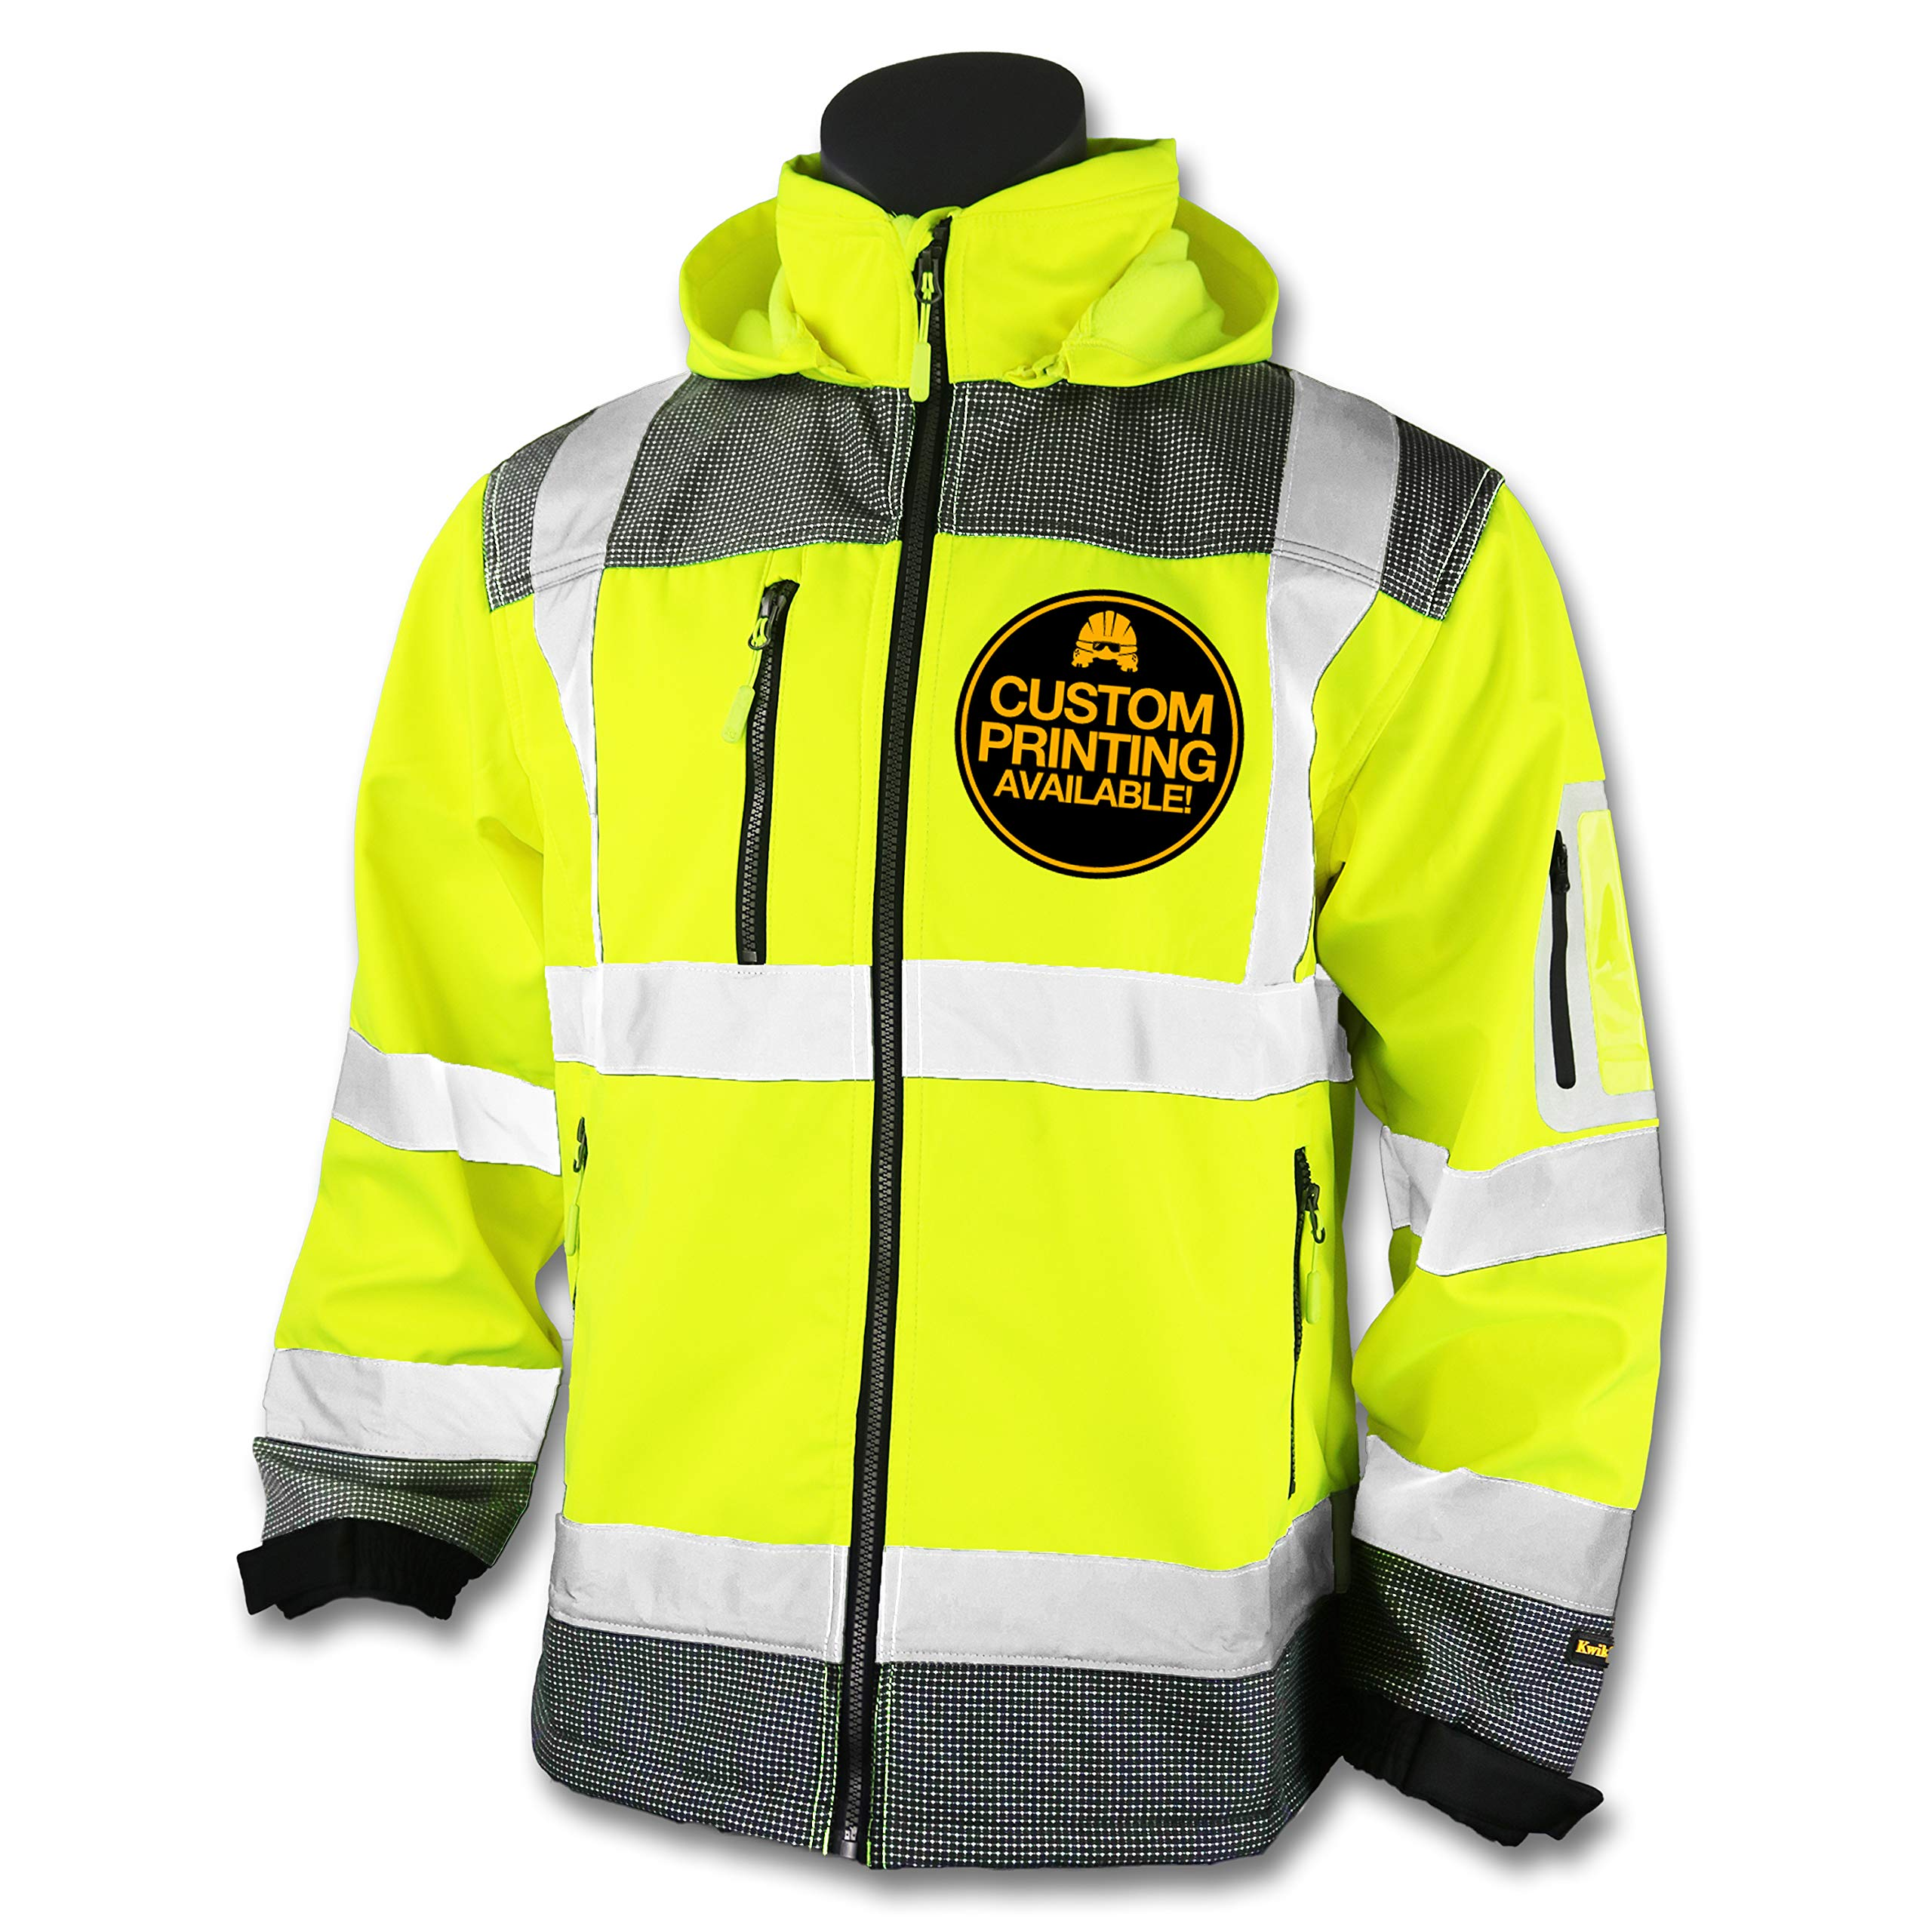 KwikSafety (Charlotte, NC) GALAXY Class 3 SoftShell Safety Jacket | ANSI Water Resistant Lightweight Reflective Hi Vis PPE Detachable Hood| Wind Rain Construction, Men Women Yellow | X-Large by KwikSafety